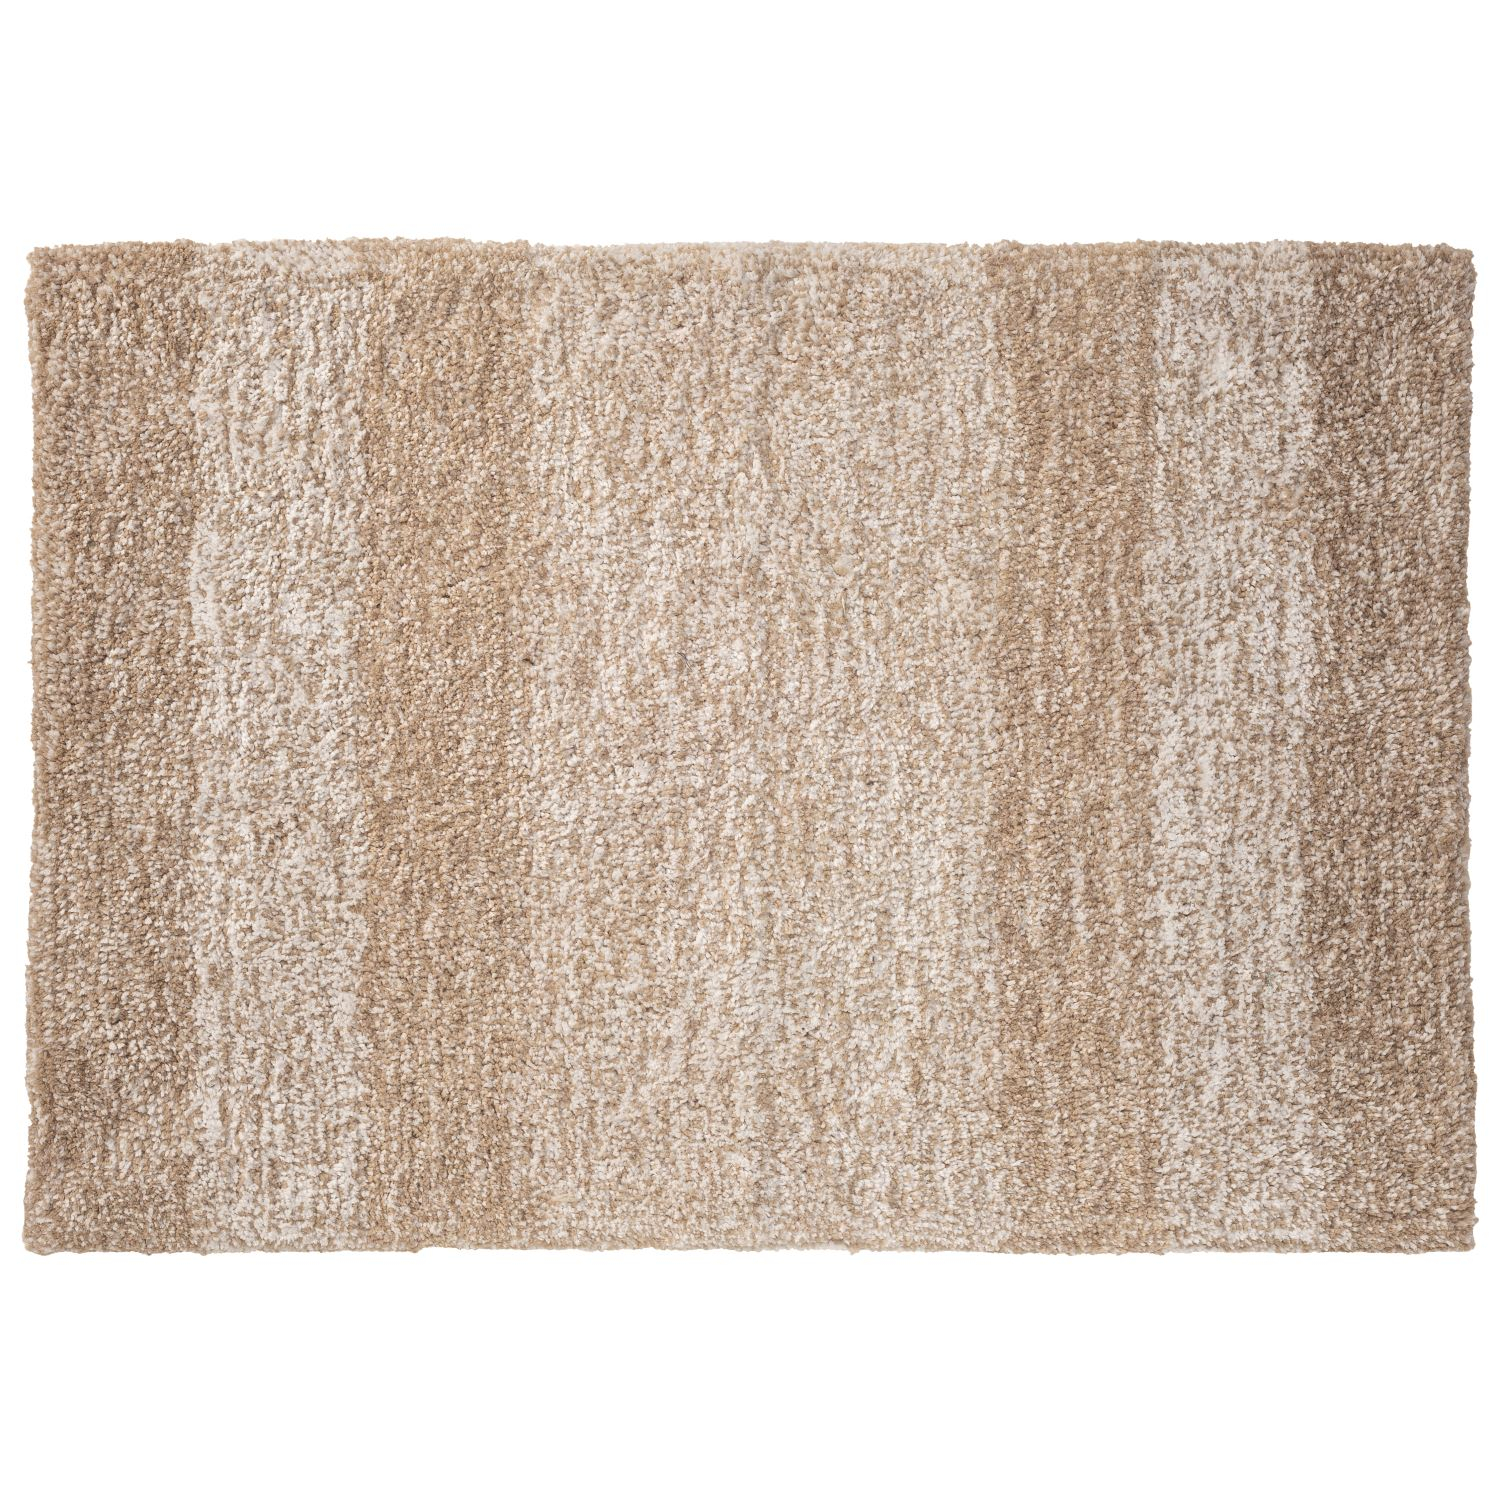 Badmat Sealskin Brilliance Oslo 60x90 cm Zand